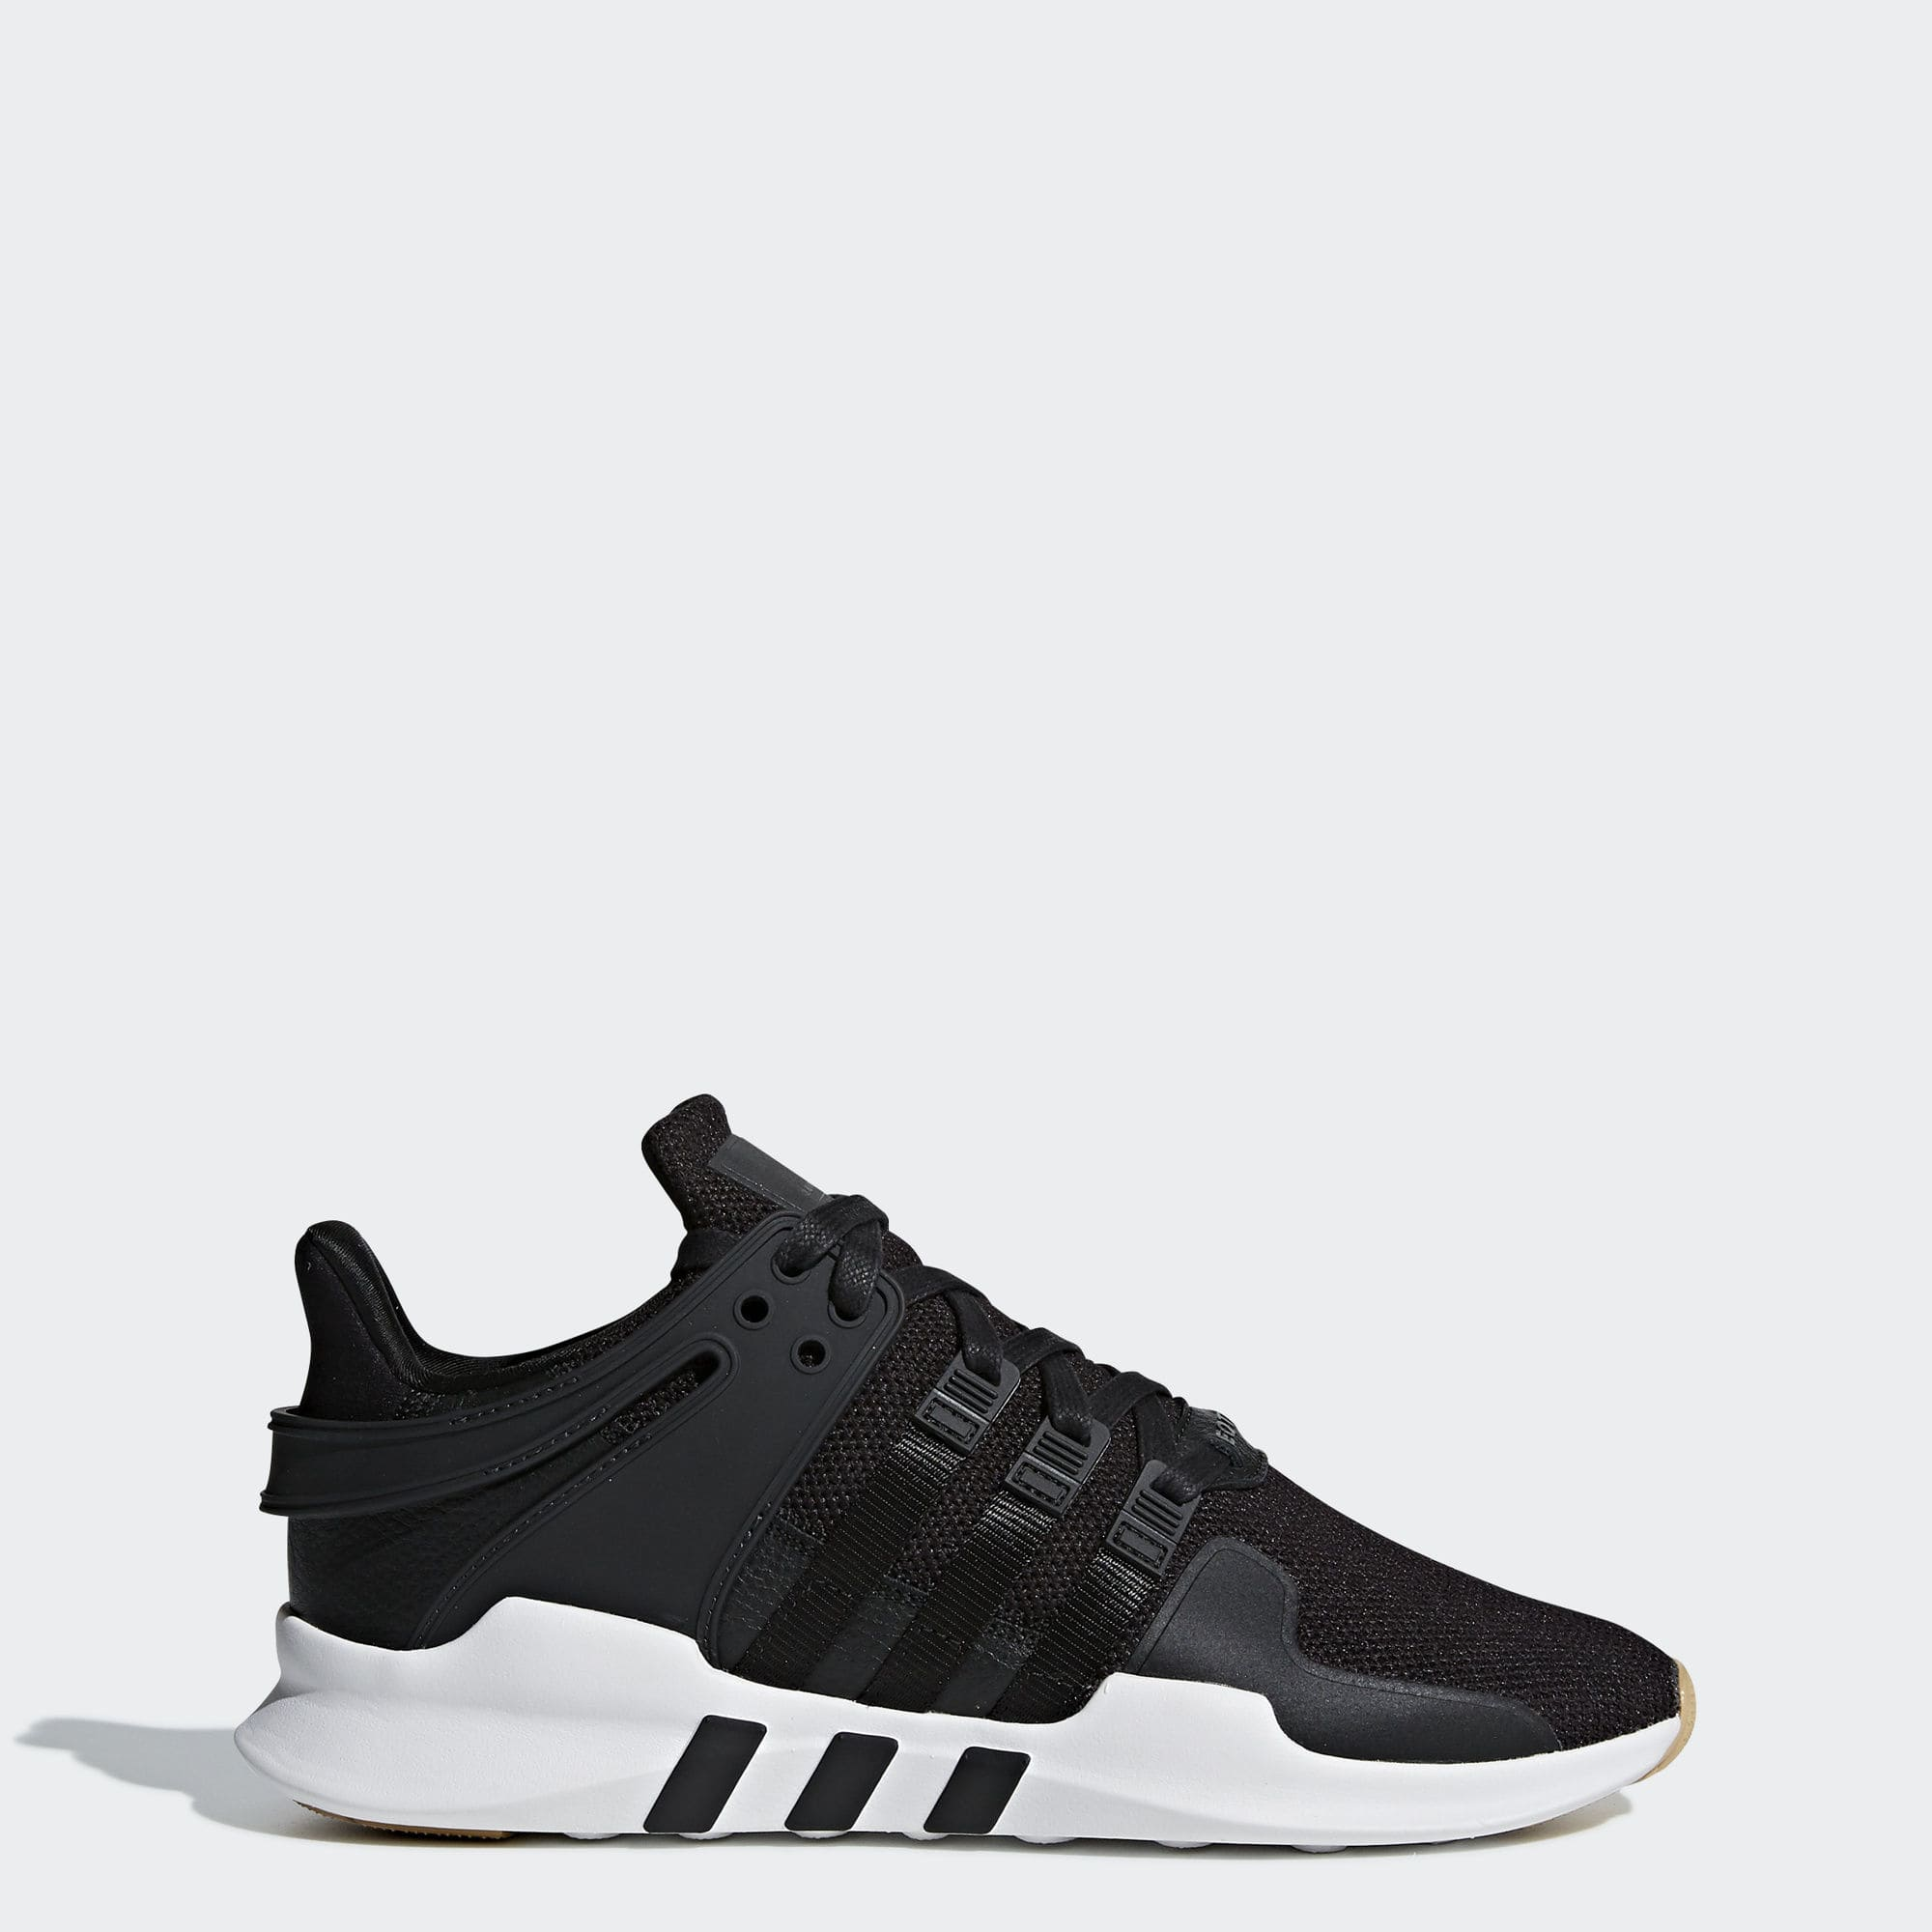 adidas EQT Support ADV Shoes Men's (Core Black/Cloud White) $44 @ eBay